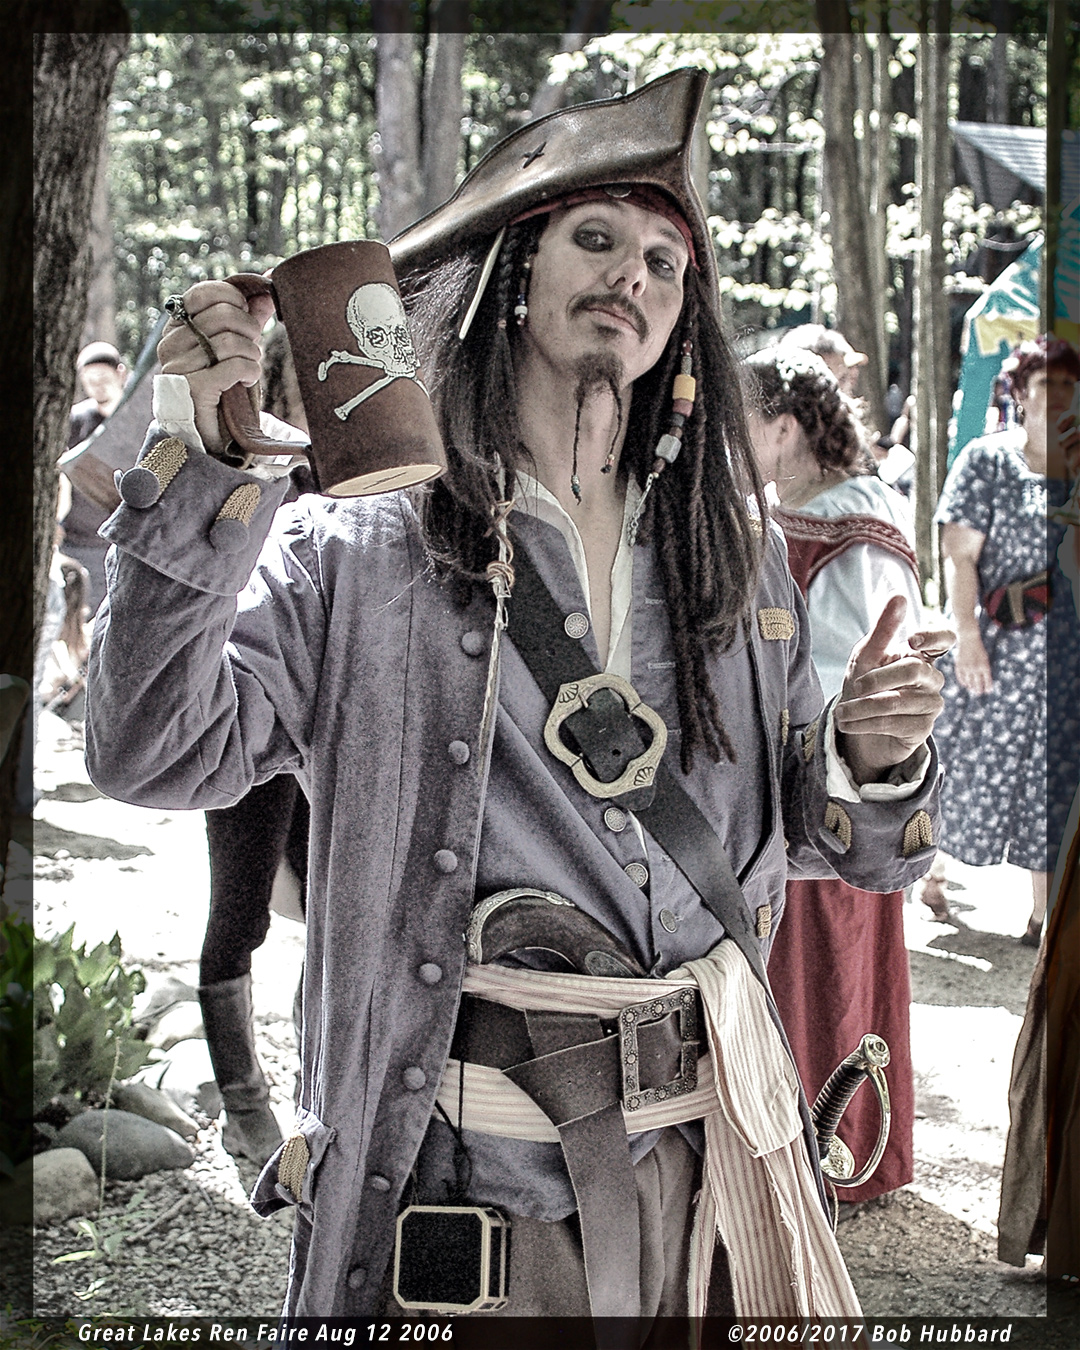 Throwback Thursday. Great Lakes Ren Faire Aug 12 2006 Excellent faire, great Jack Sparrow.